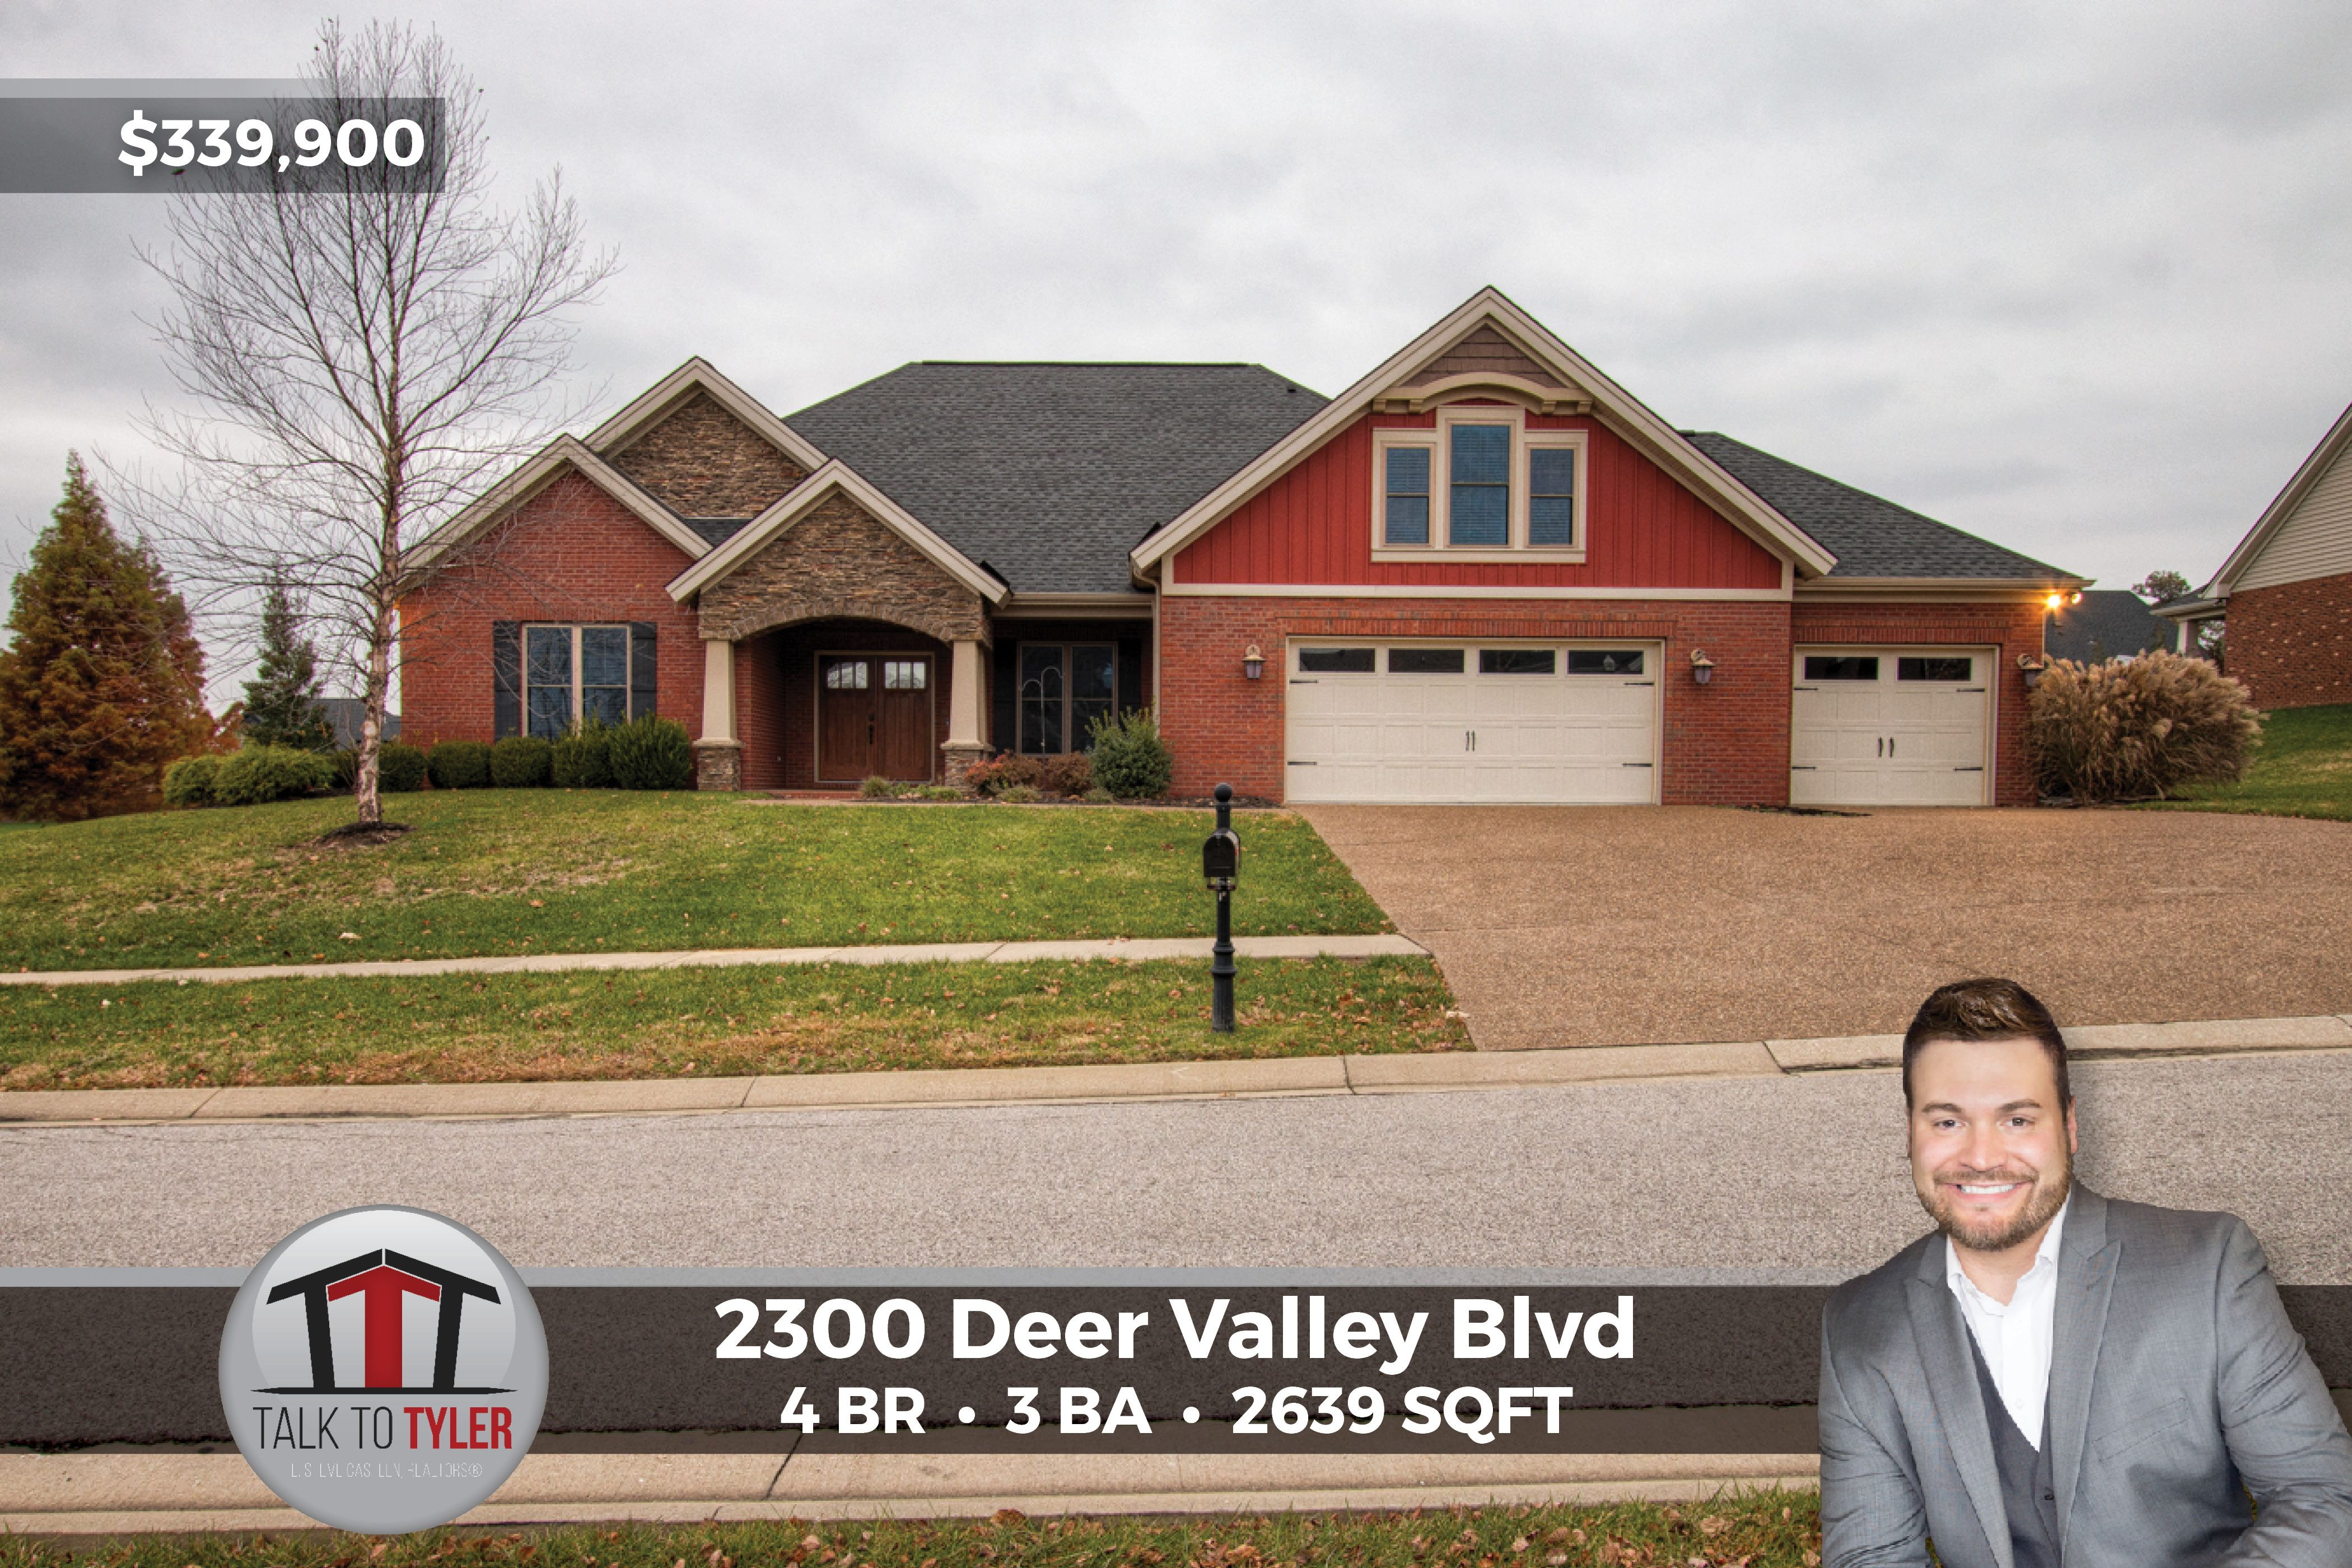 Welcome Home To The Reserve At Deer Valley This Presidential Series Home Offers A Distinctive Living Experien Deer Valley Owensboro Kentucky The Neighbourhood